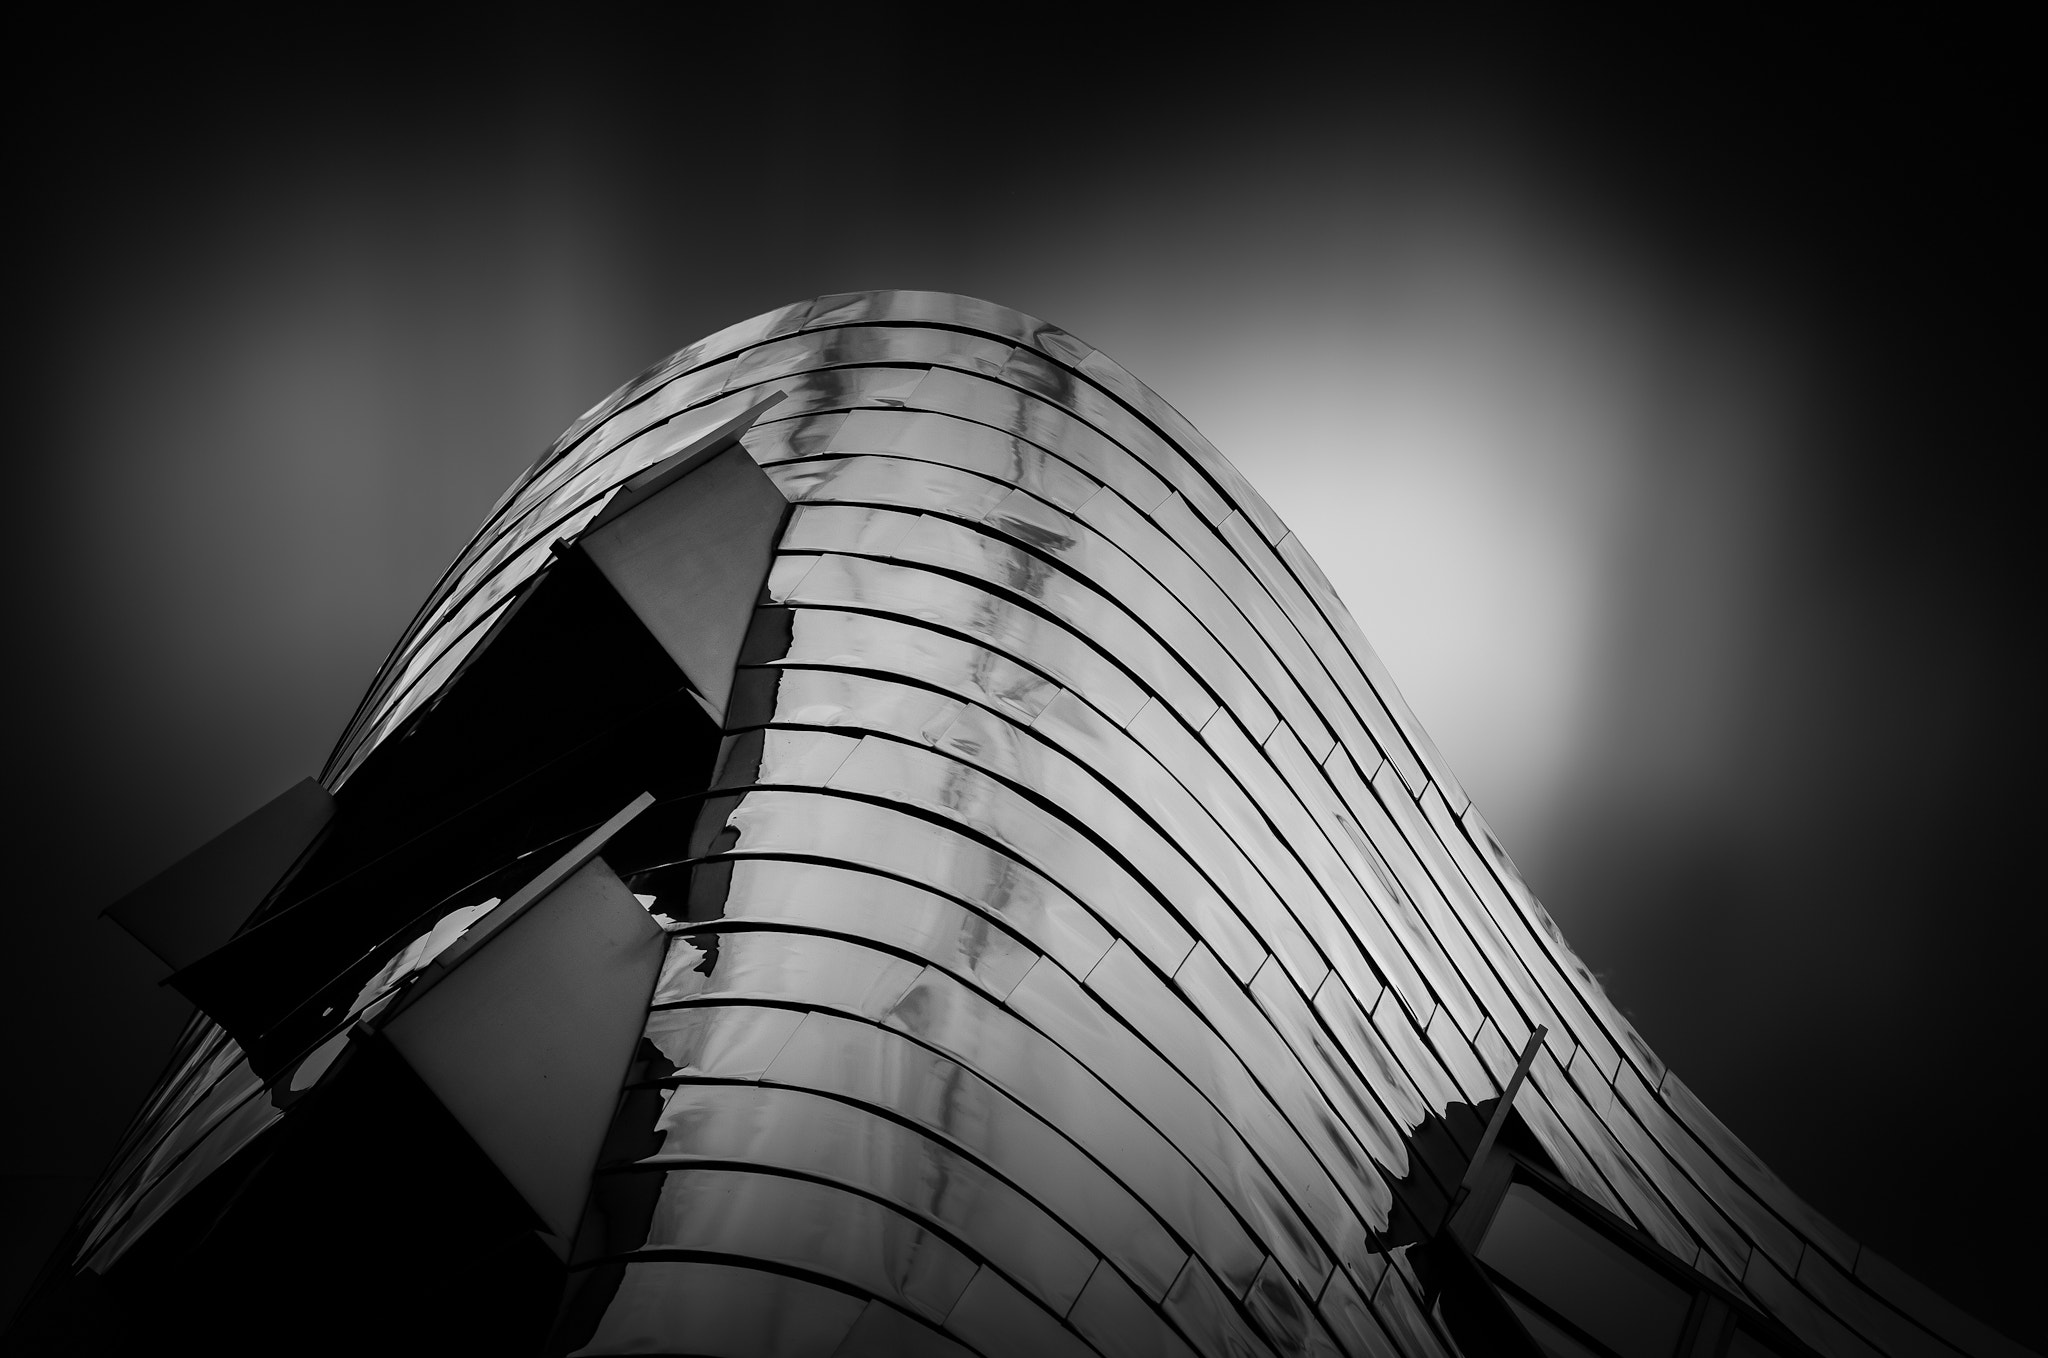 Photograph Gehry by Raymond van der Hoogt on 500px